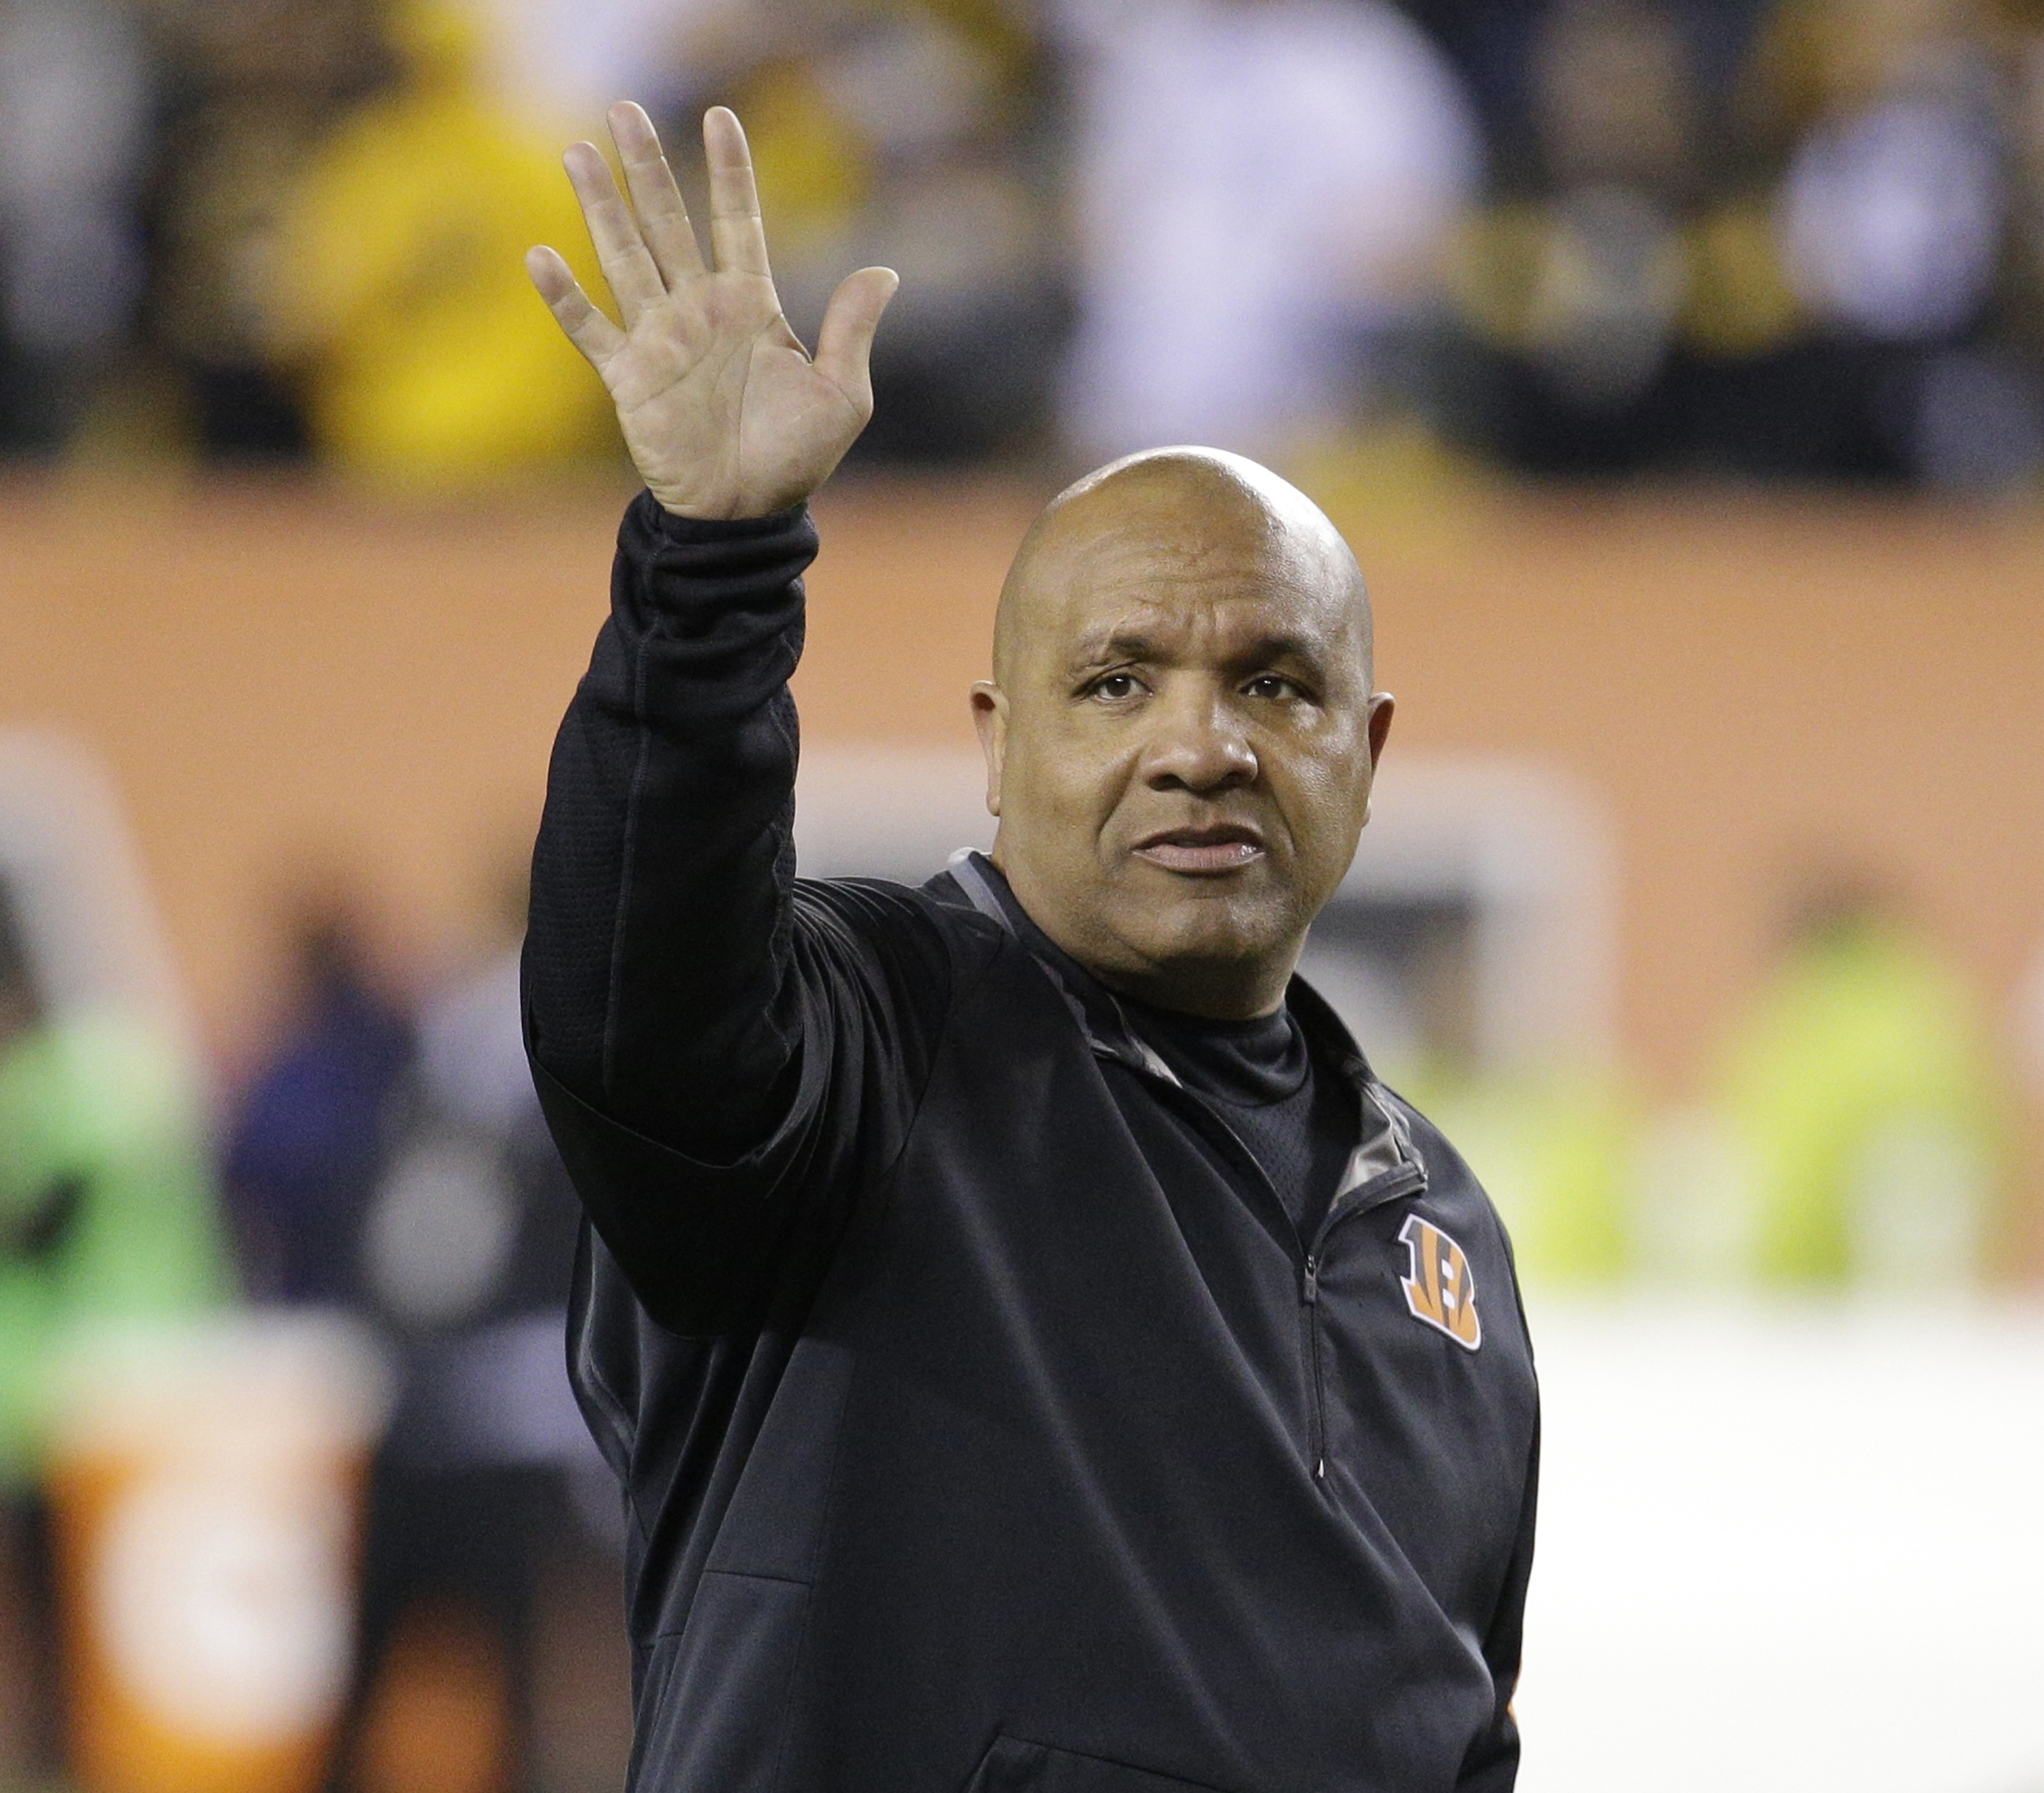 FILE - This Jan. 9, 2016 file photo shows Cincinnati Bengals offensive coordinator Hue Jackson before an NFL wild-card playoff football game between the Cincinnati Bengals and the Pittsburgh Steelers in Cincinnati. Just hours after Cincinnati lost to Pitt